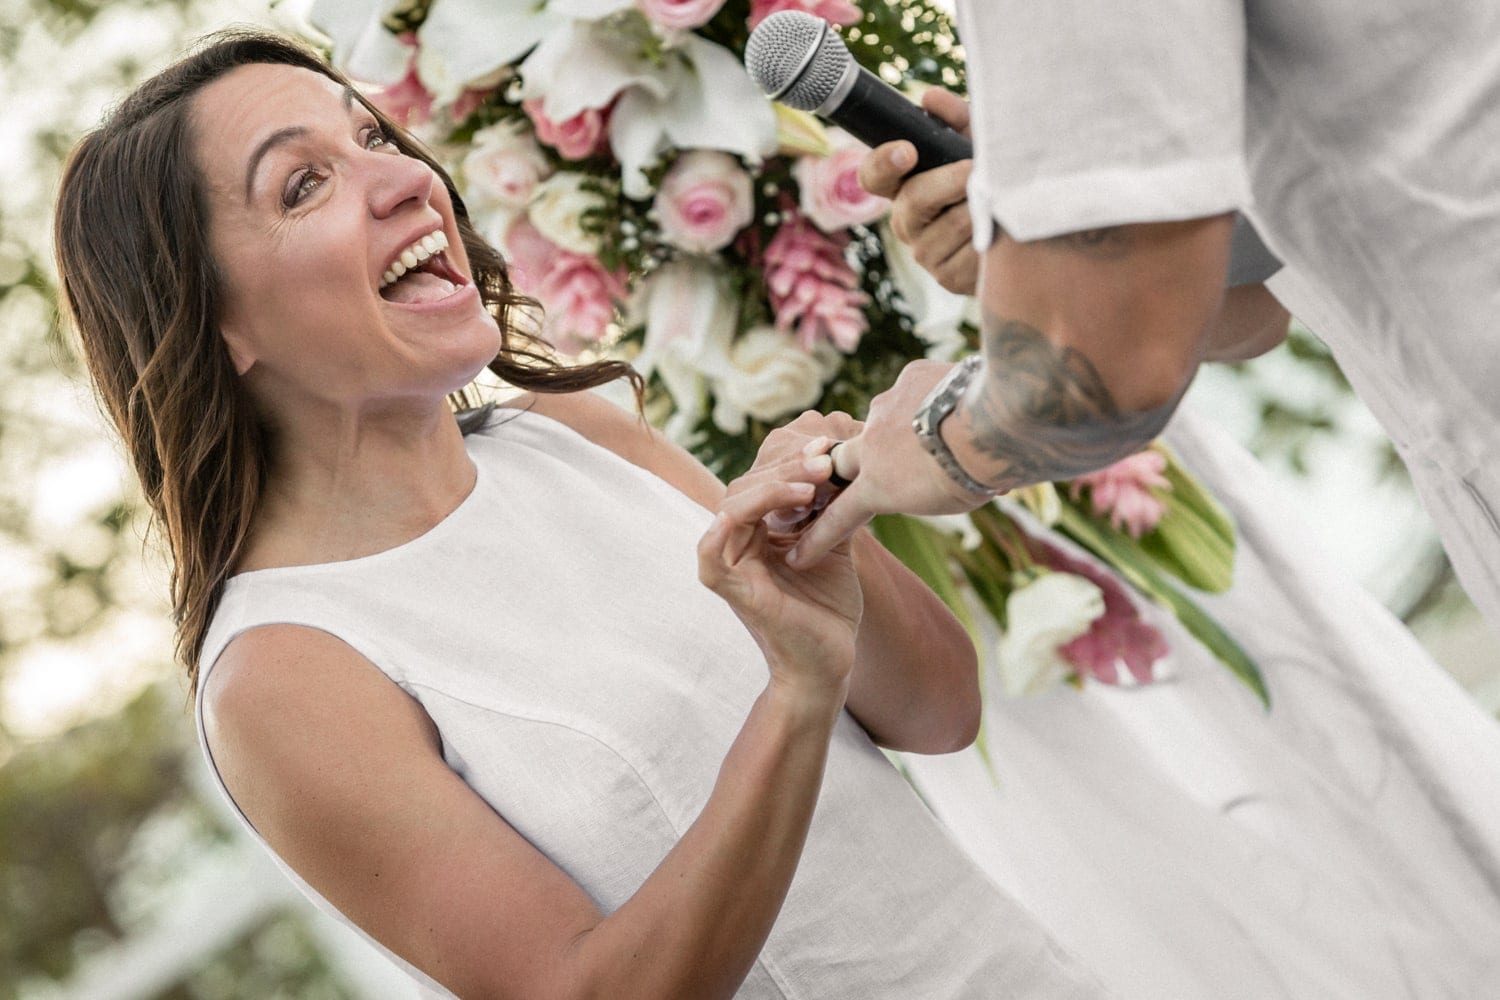 Bride smiles as she and the groom exchange wedding rings.